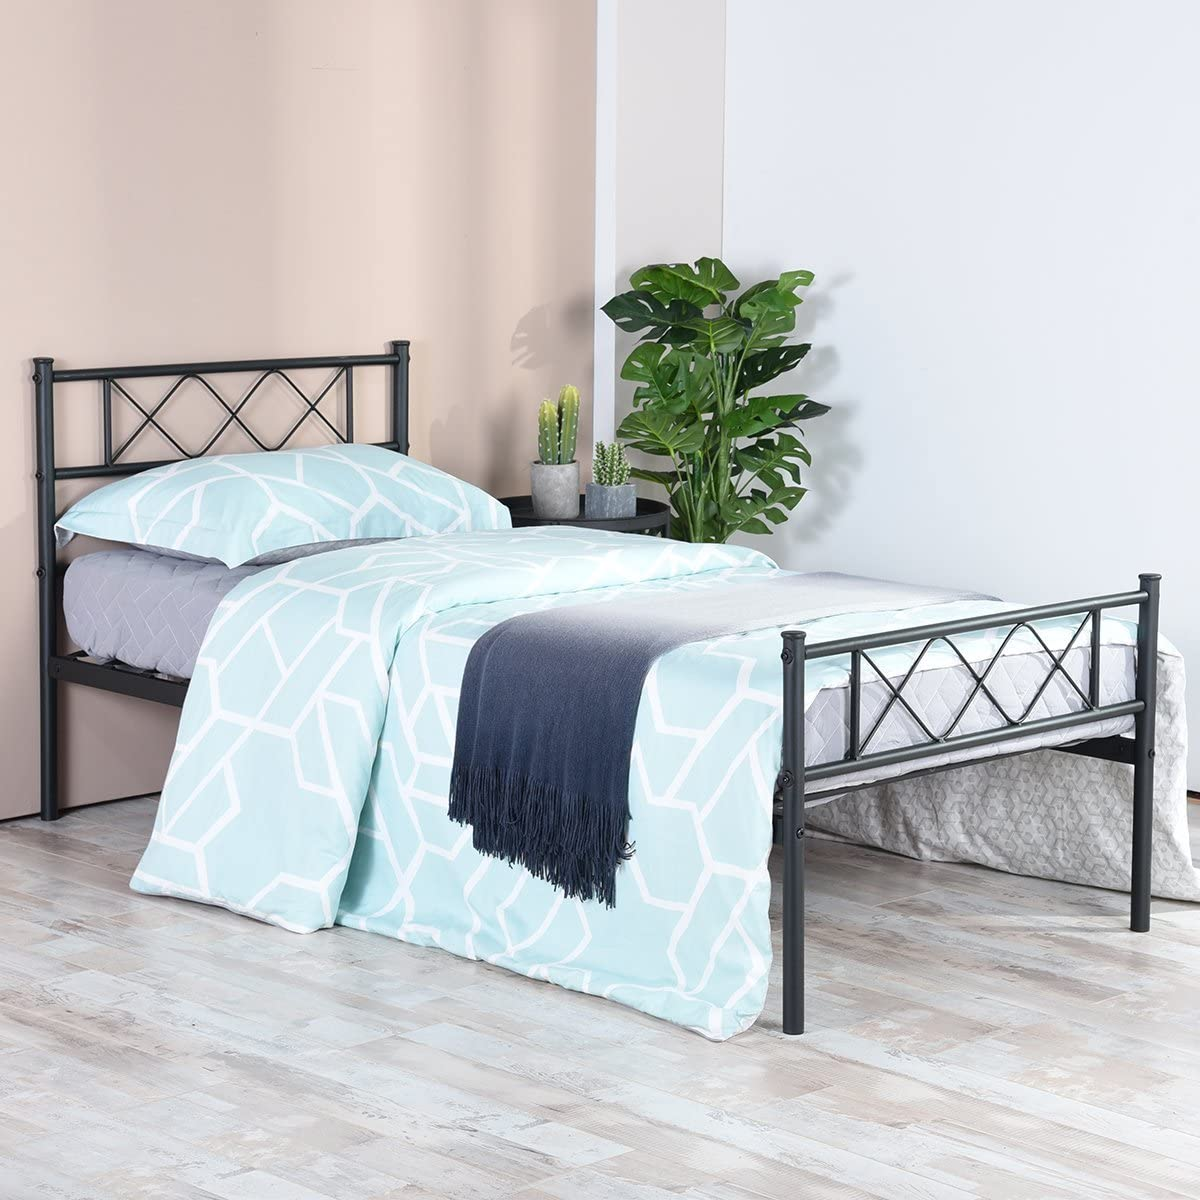 SimLife Metal Platform Bed Frame with Two Headboards Mattress Foundation Slat Support No Box Spring Needed, Twin